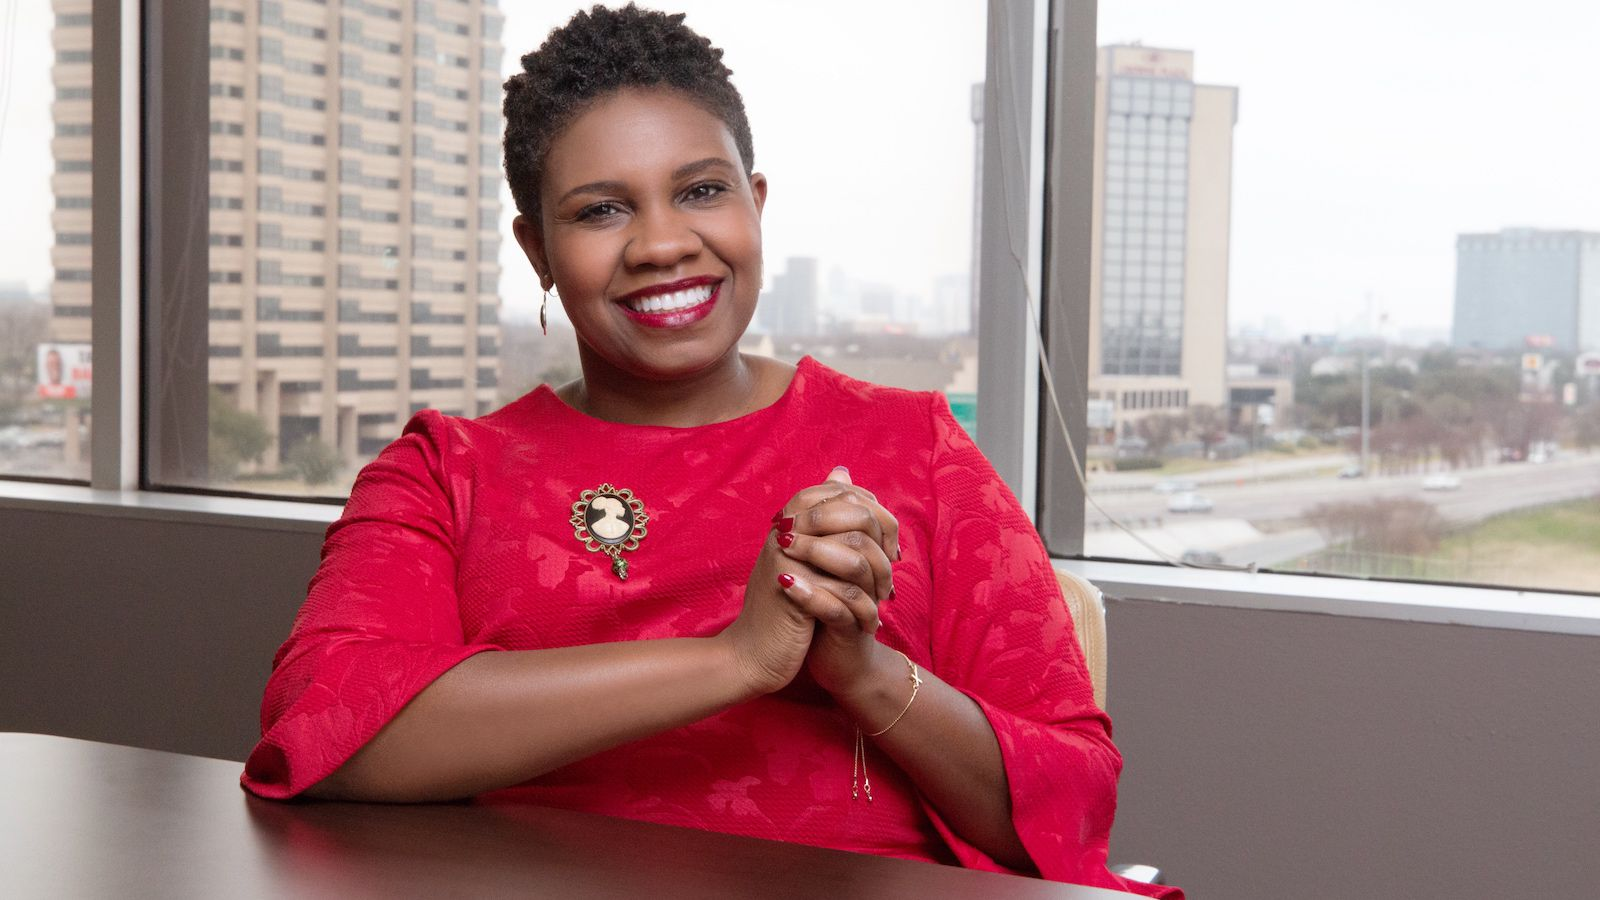 """Akilah Wallace started her career as an executive assistant at Dallas Women's Foundation (now Texas Women's Foundation). Today she is executive director of Faith in Texas. """"Institutions need to invest in Black and brown women who are already running nonprofit programs by giving them equitable pay and benefits,"""" she says."""